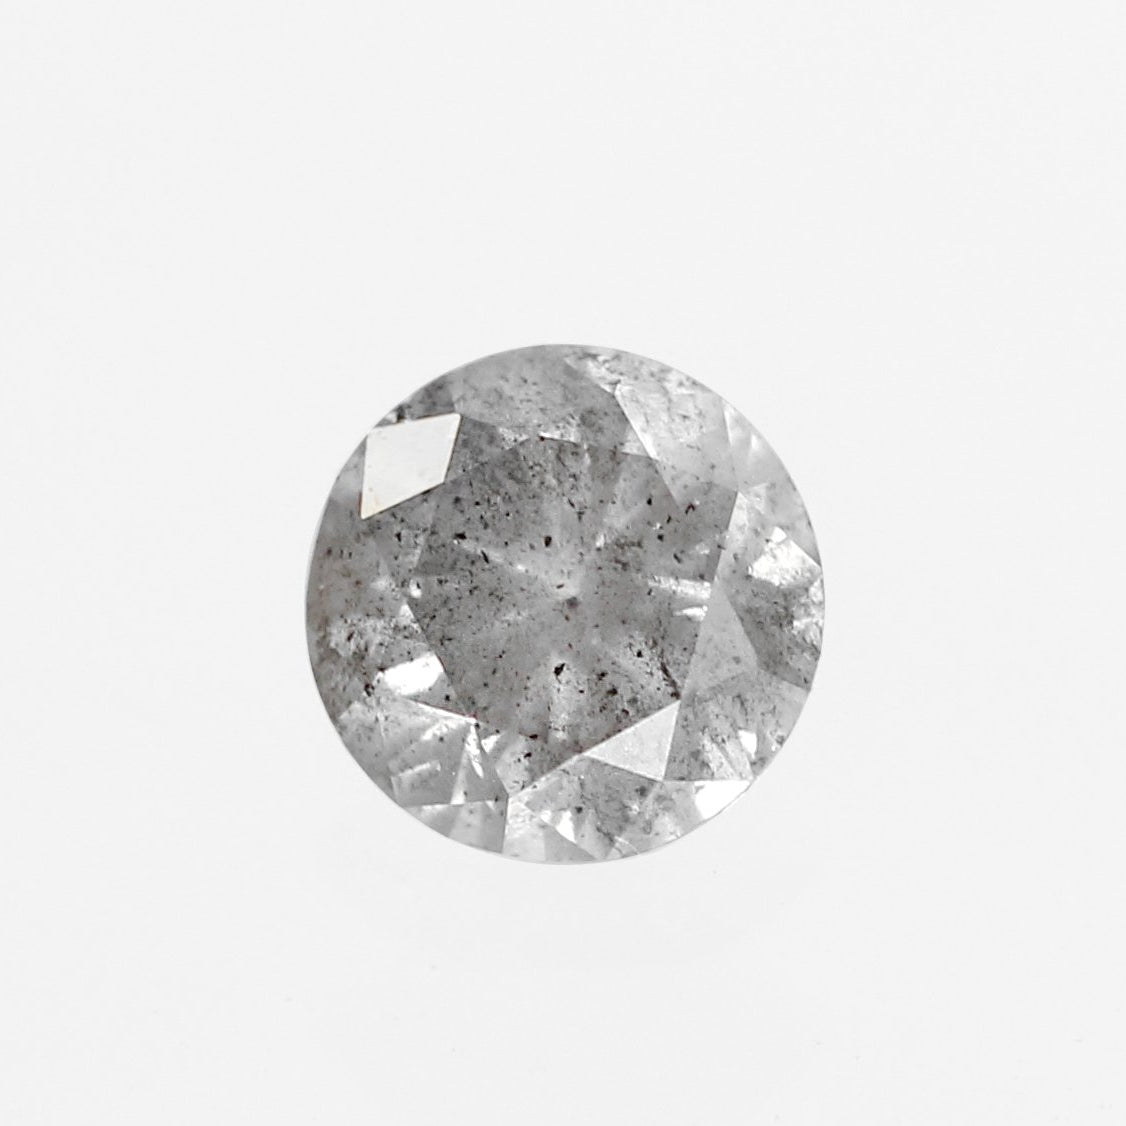 .95ct Celestial Diamond for Custom Work - Inventory Code CBR95b - Celestial Diamonds ® by Midwinter Co.